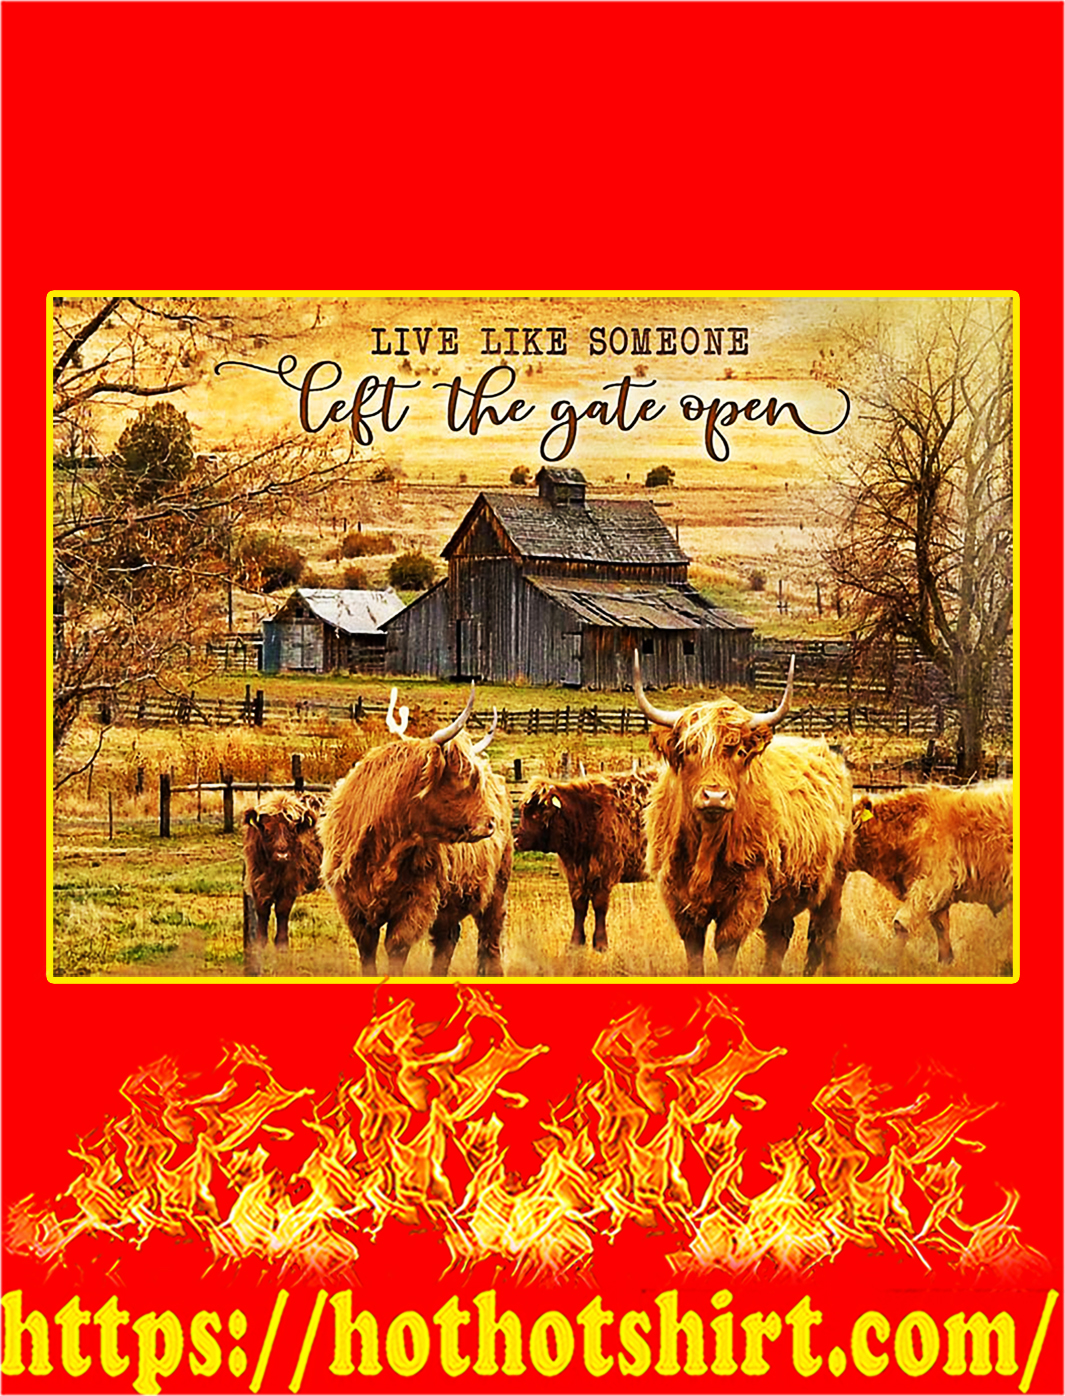 Highland cattle live like someone left the gate open poster - A3